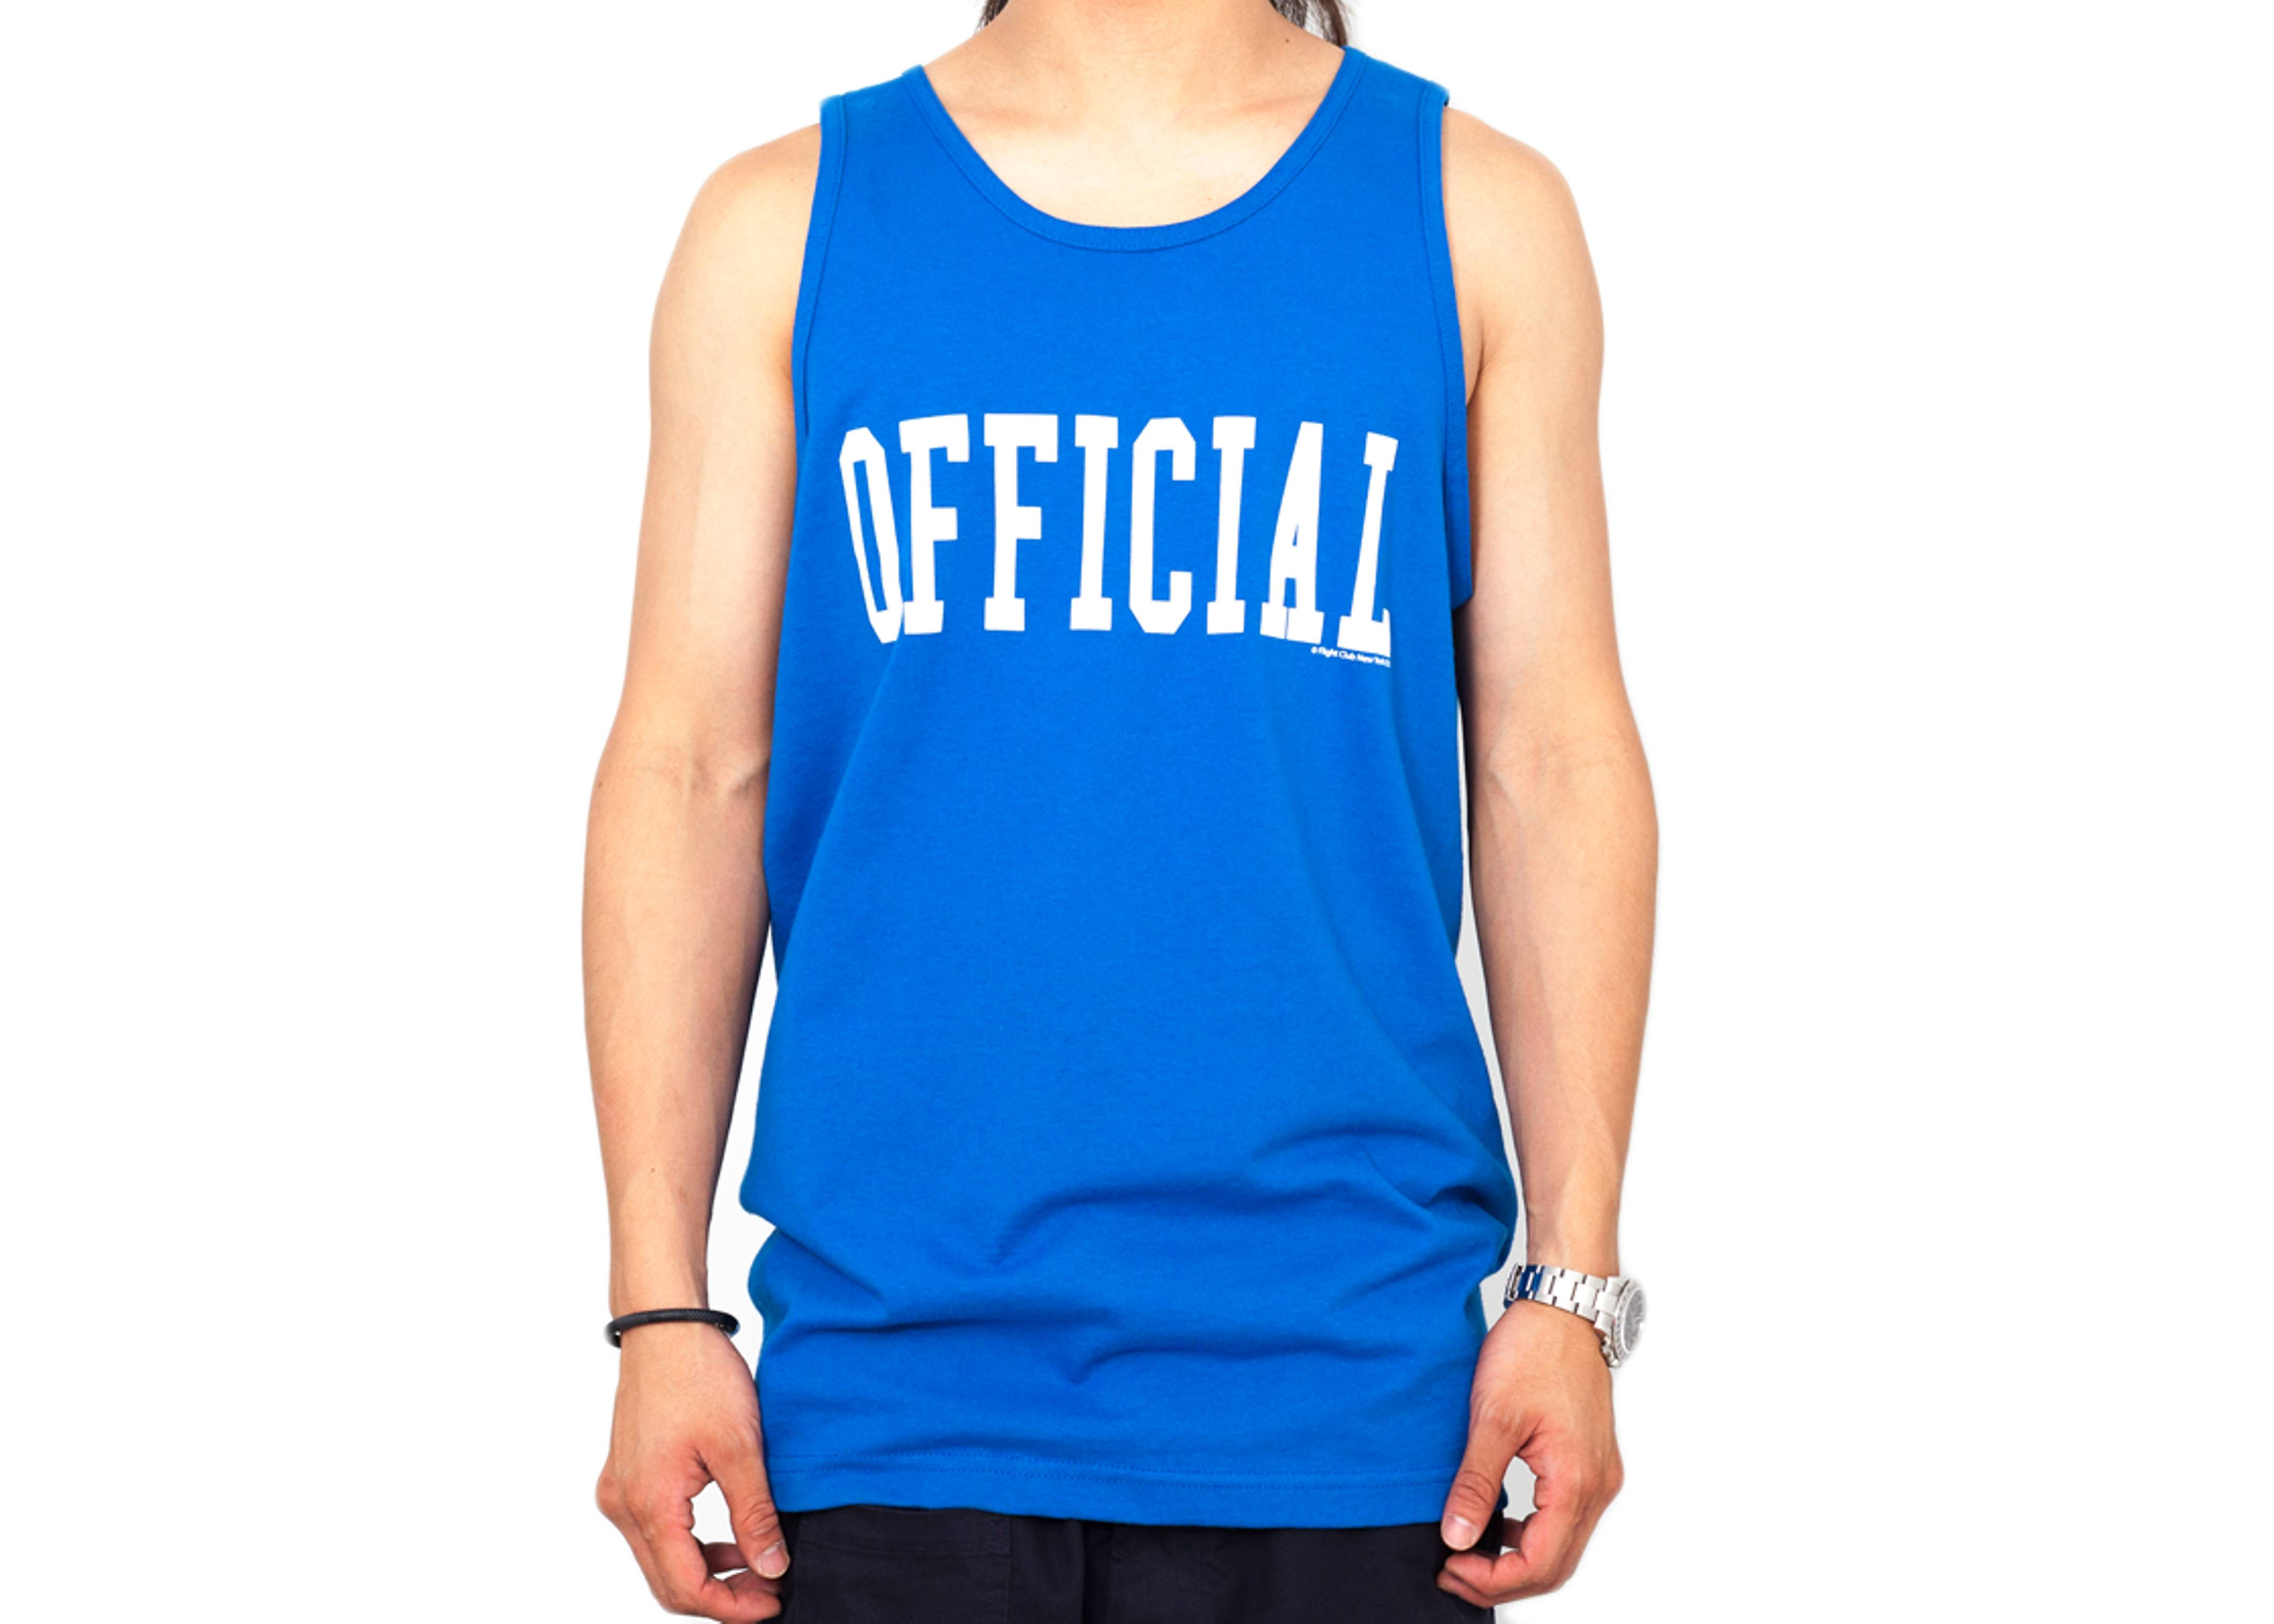 official tank